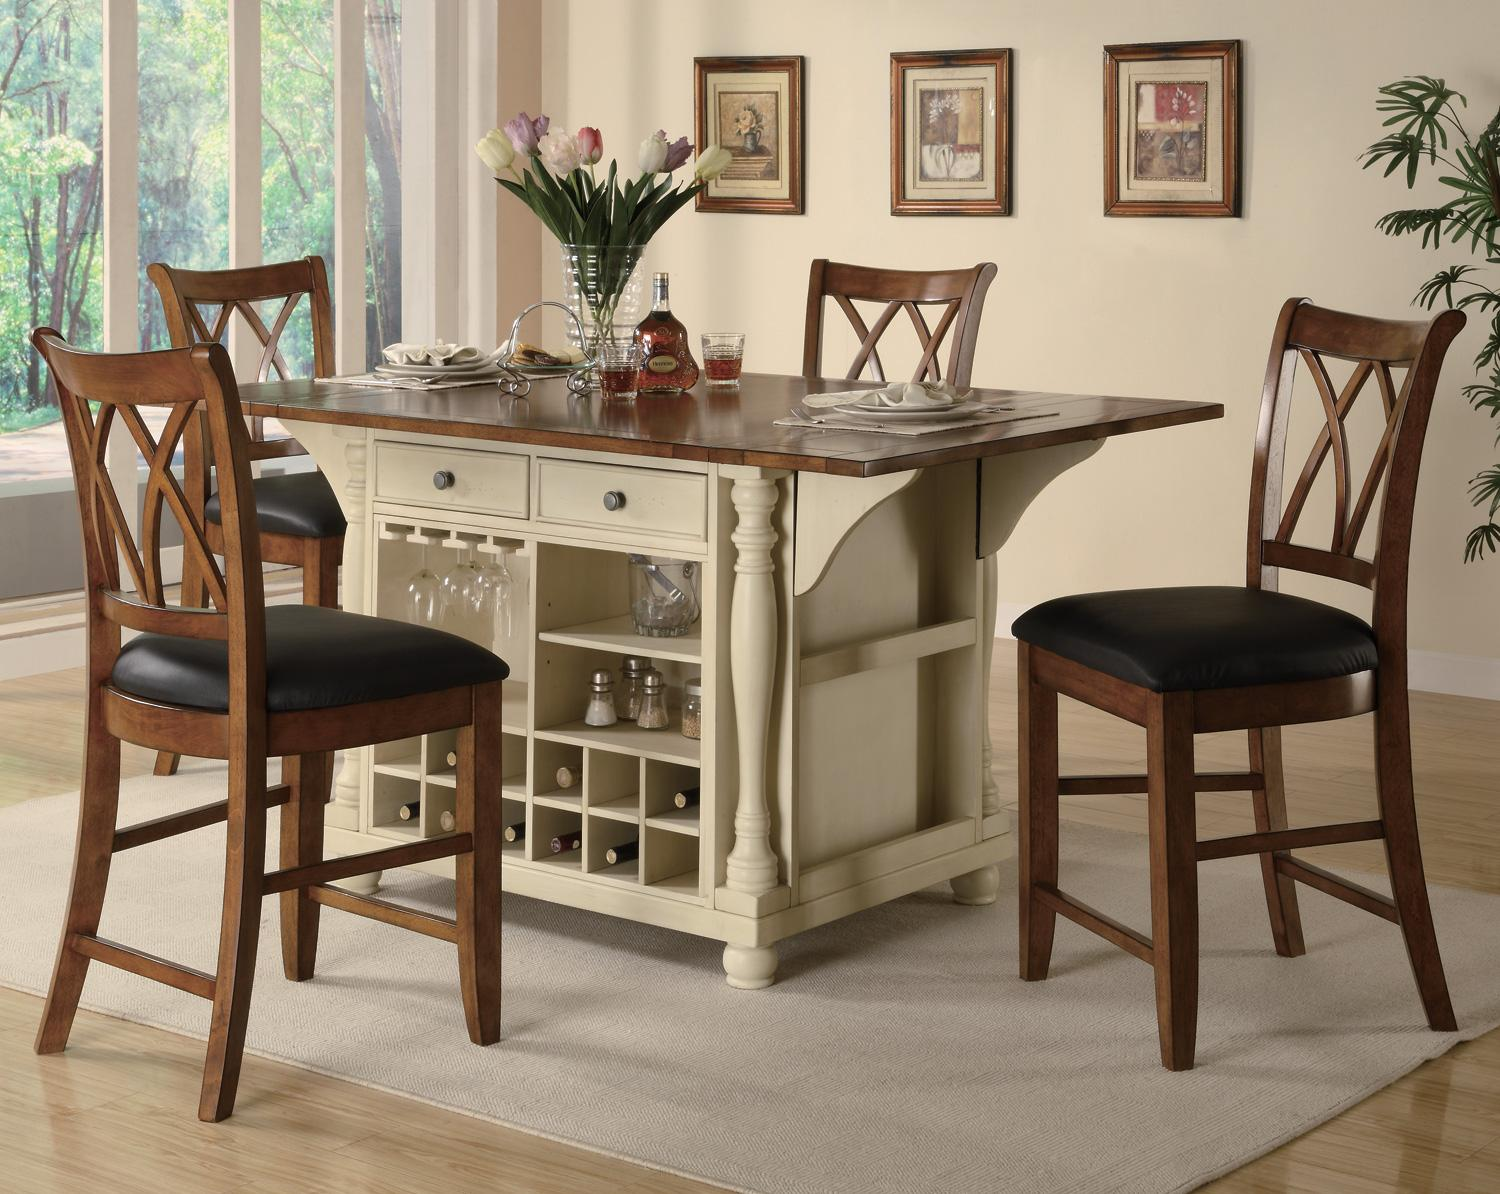 Kitchen dinette sets Photo - 4